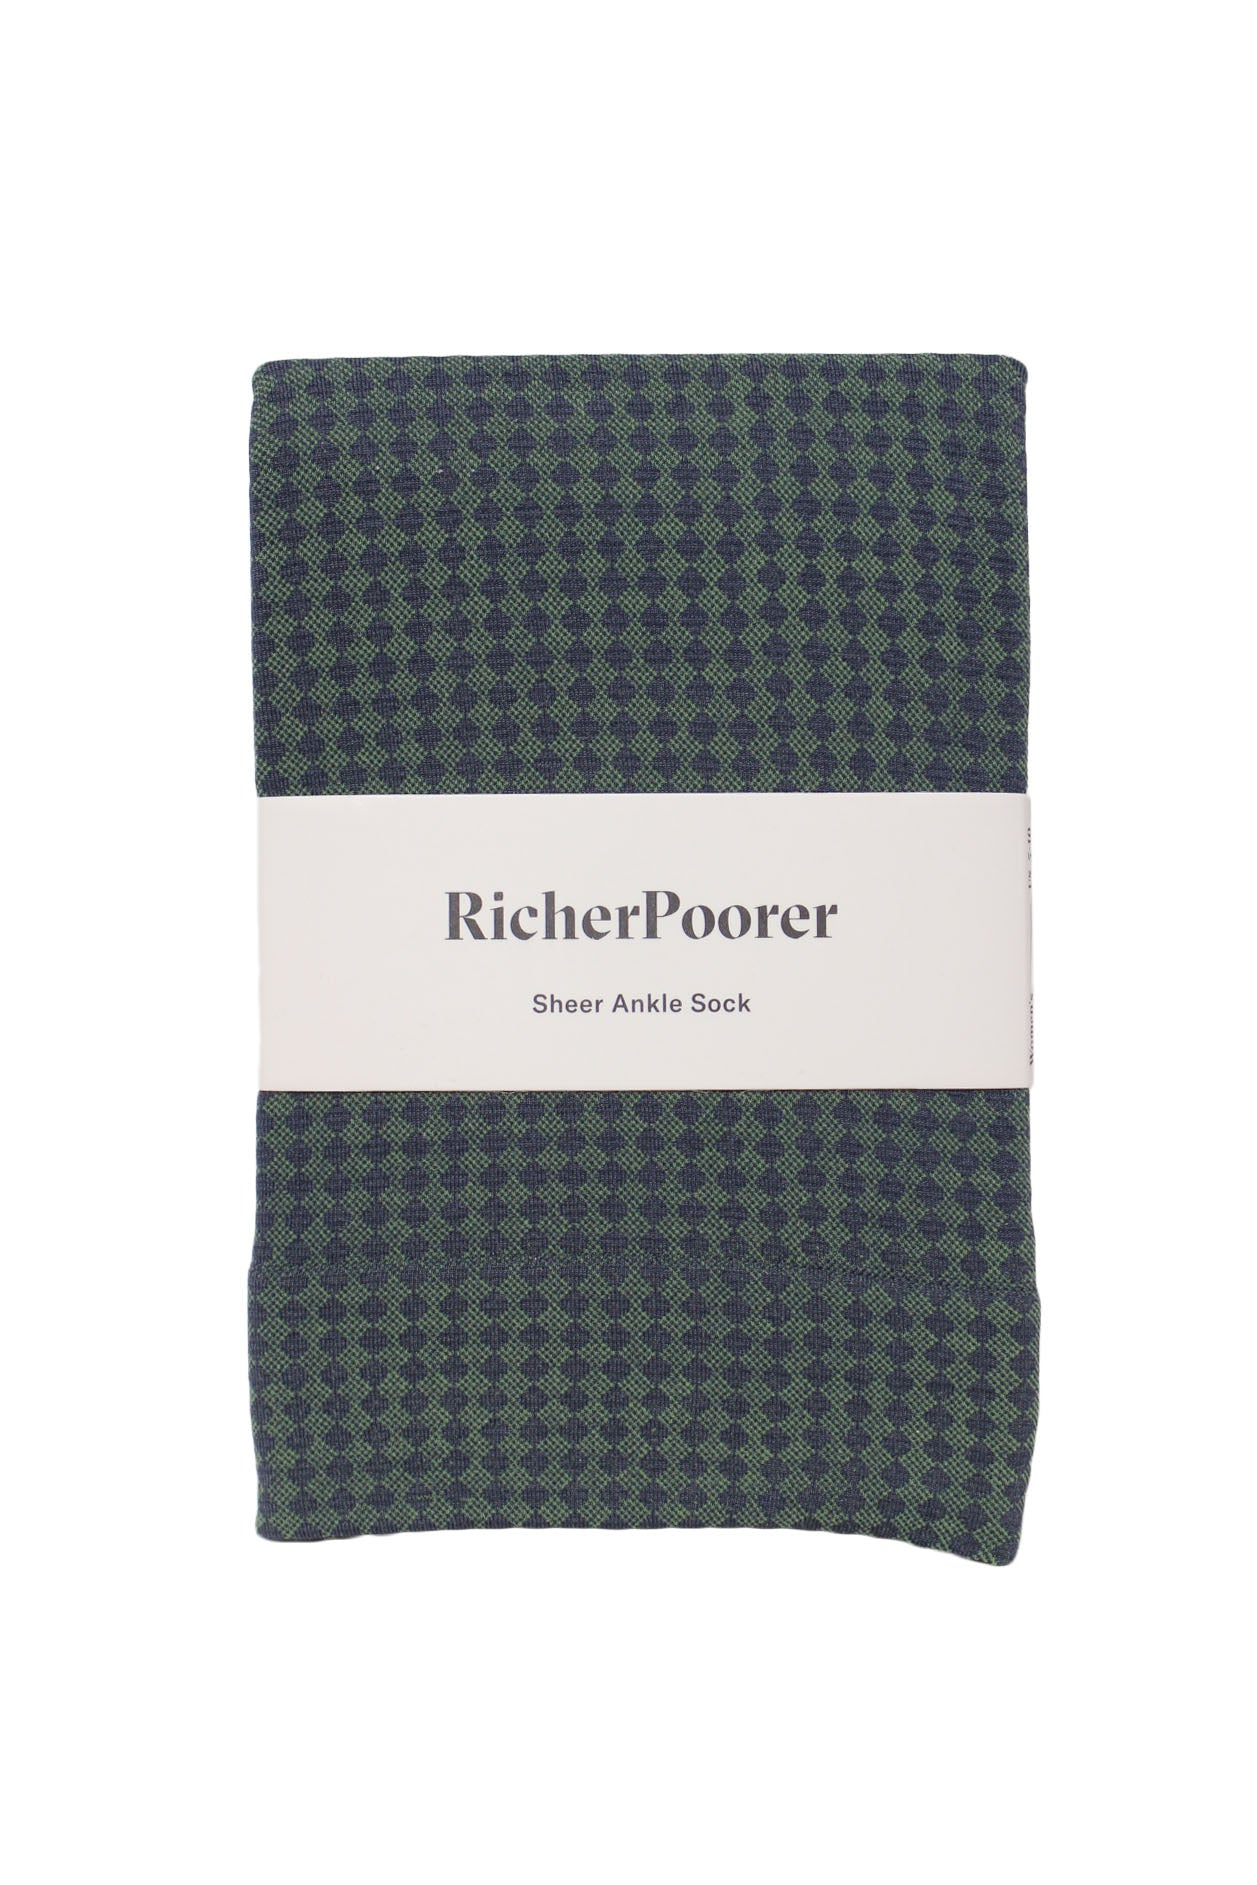 blue and green checkered sheer ankle sock by richer poorer.